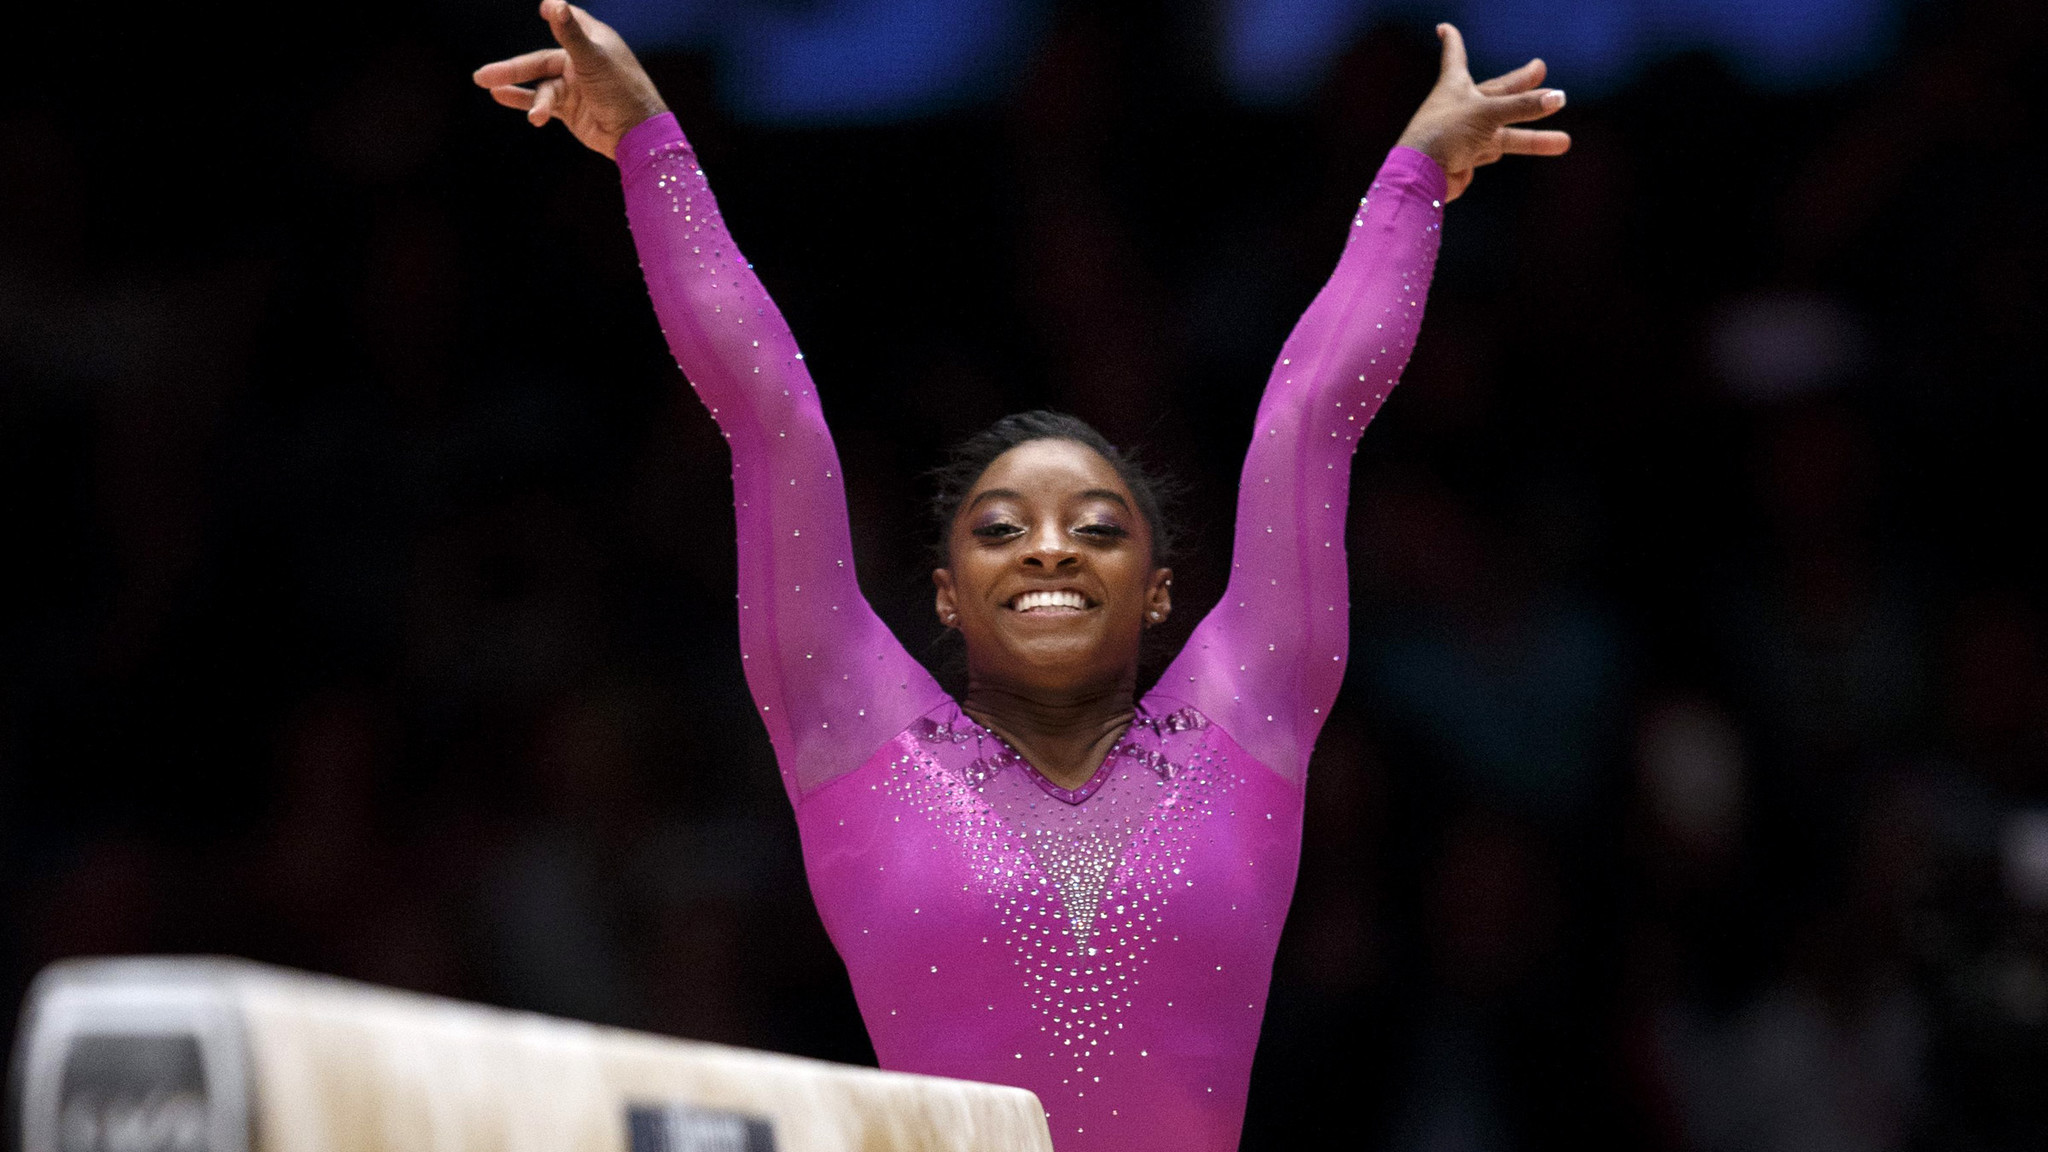 Simone Biles Wins Record 10th Gold At World Gymnastics